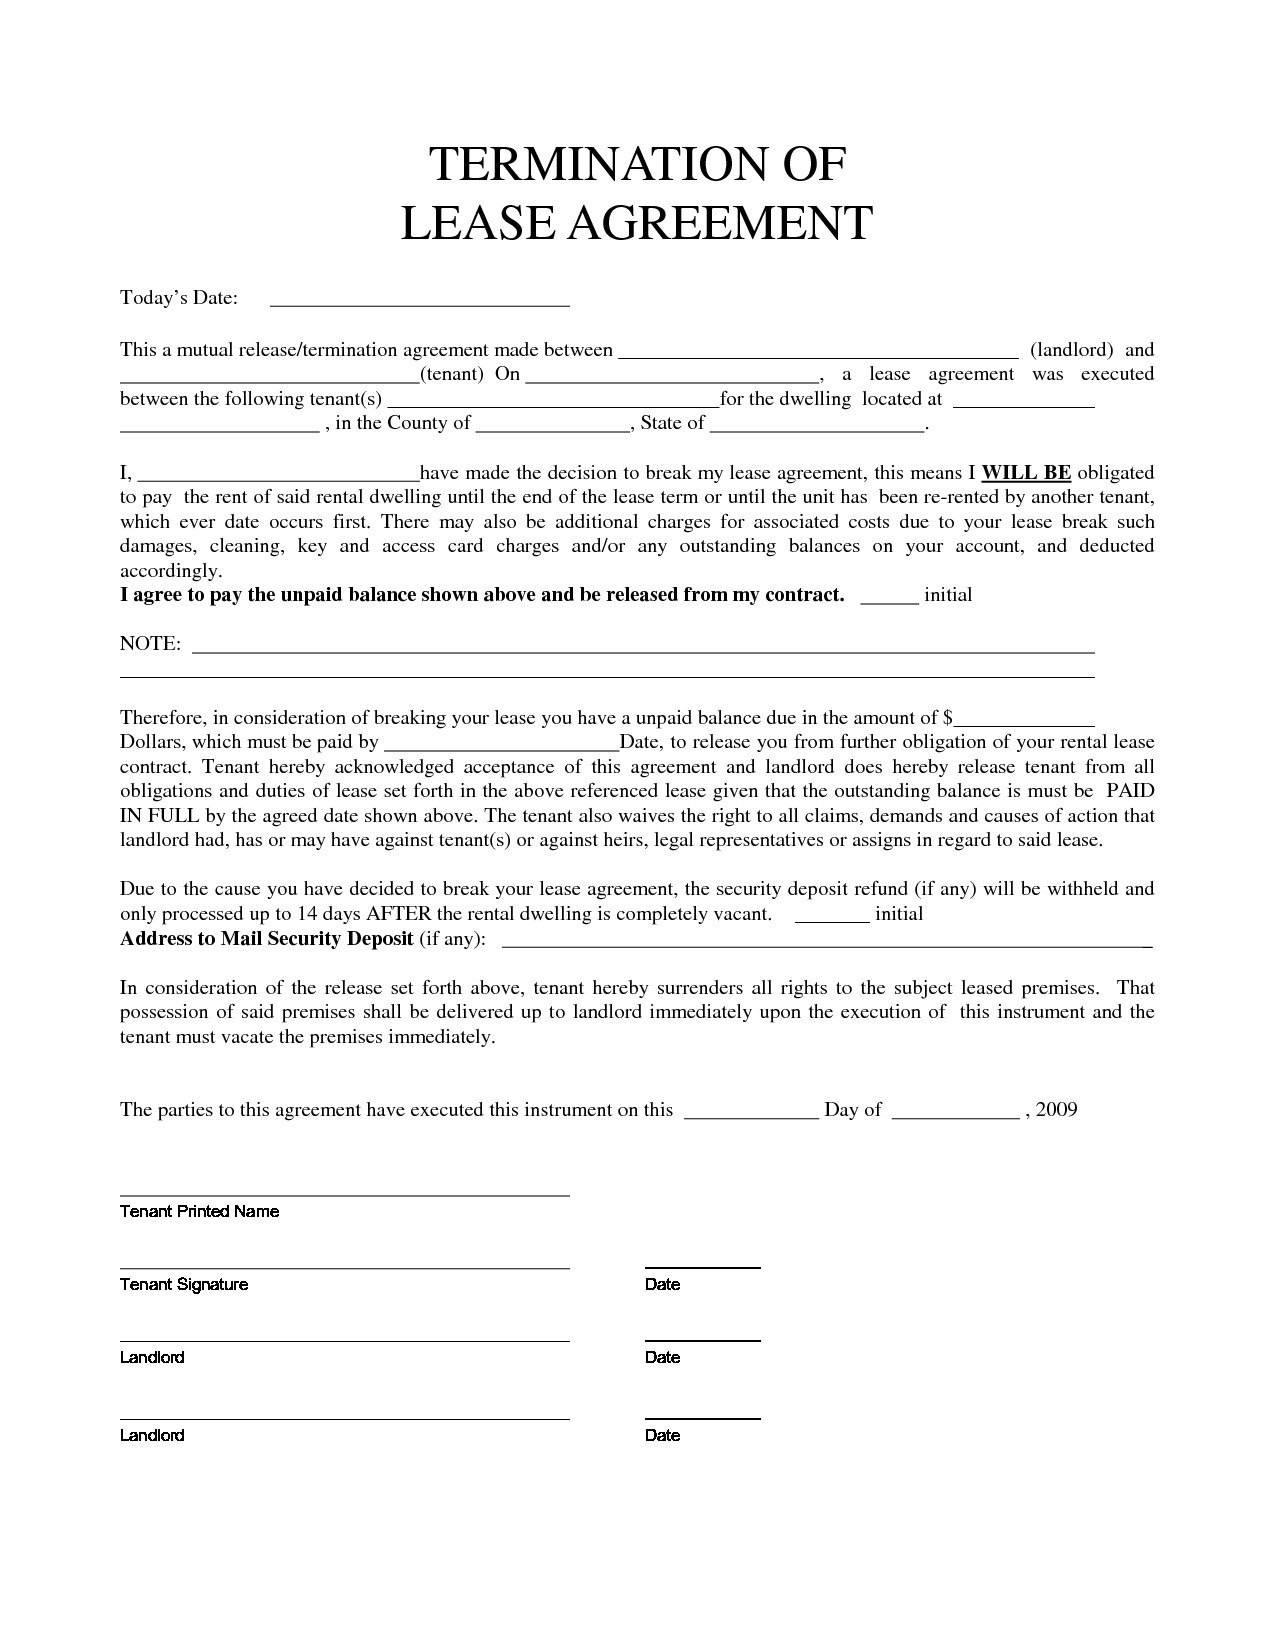 Termination Of Rental Agreement Form Early Termination Of Lease Agreement Template Templates Resume Examples Xla7bweyej